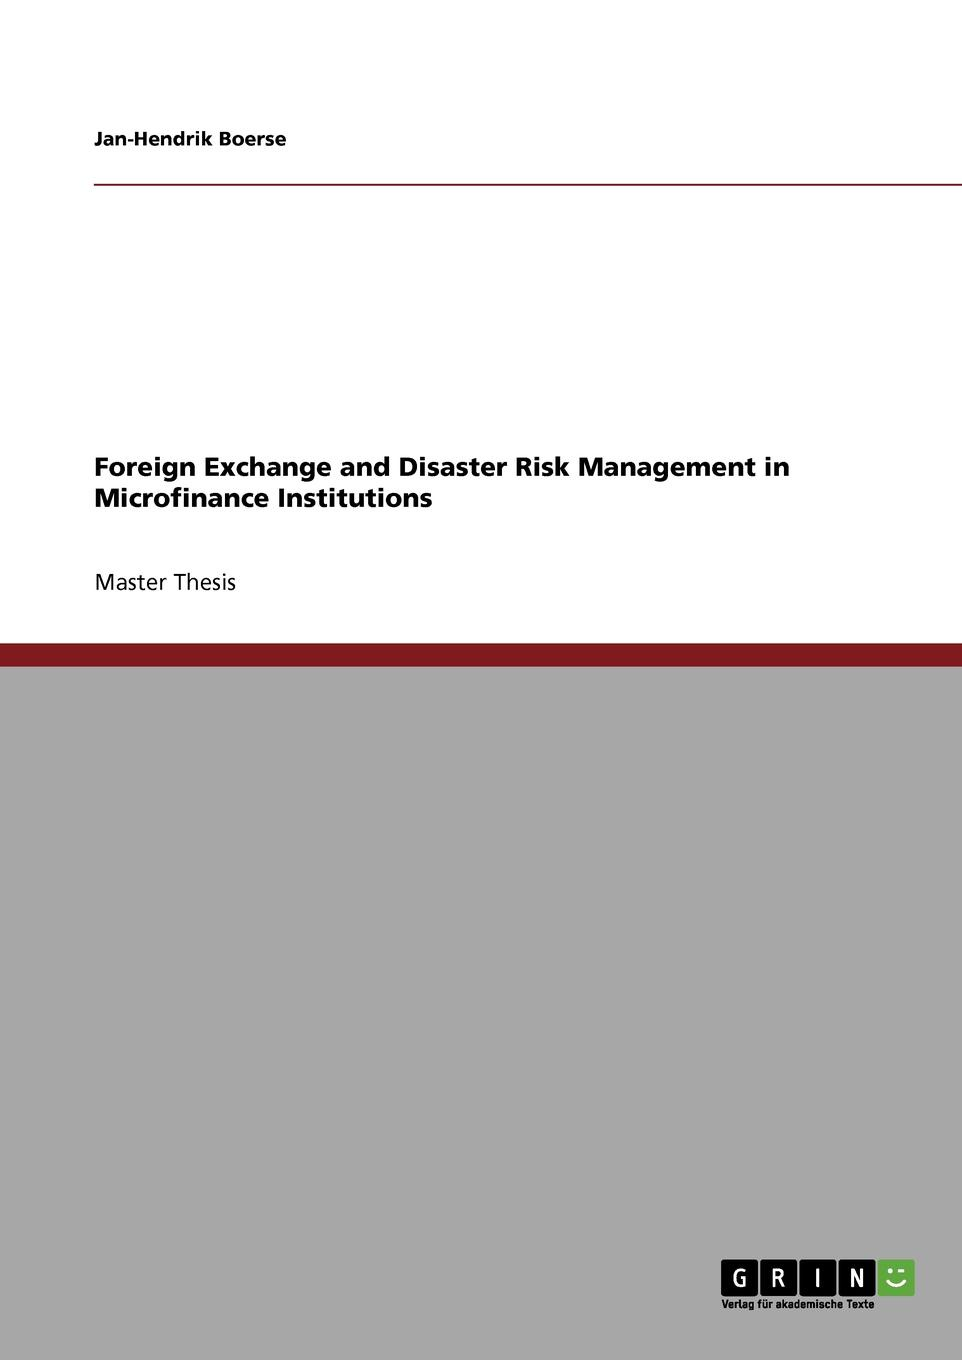 купить Jan-Hendrik Boerse Foreign Exchange and Disaster Risk Management in Microfinance Institutions по цене 6989 рублей